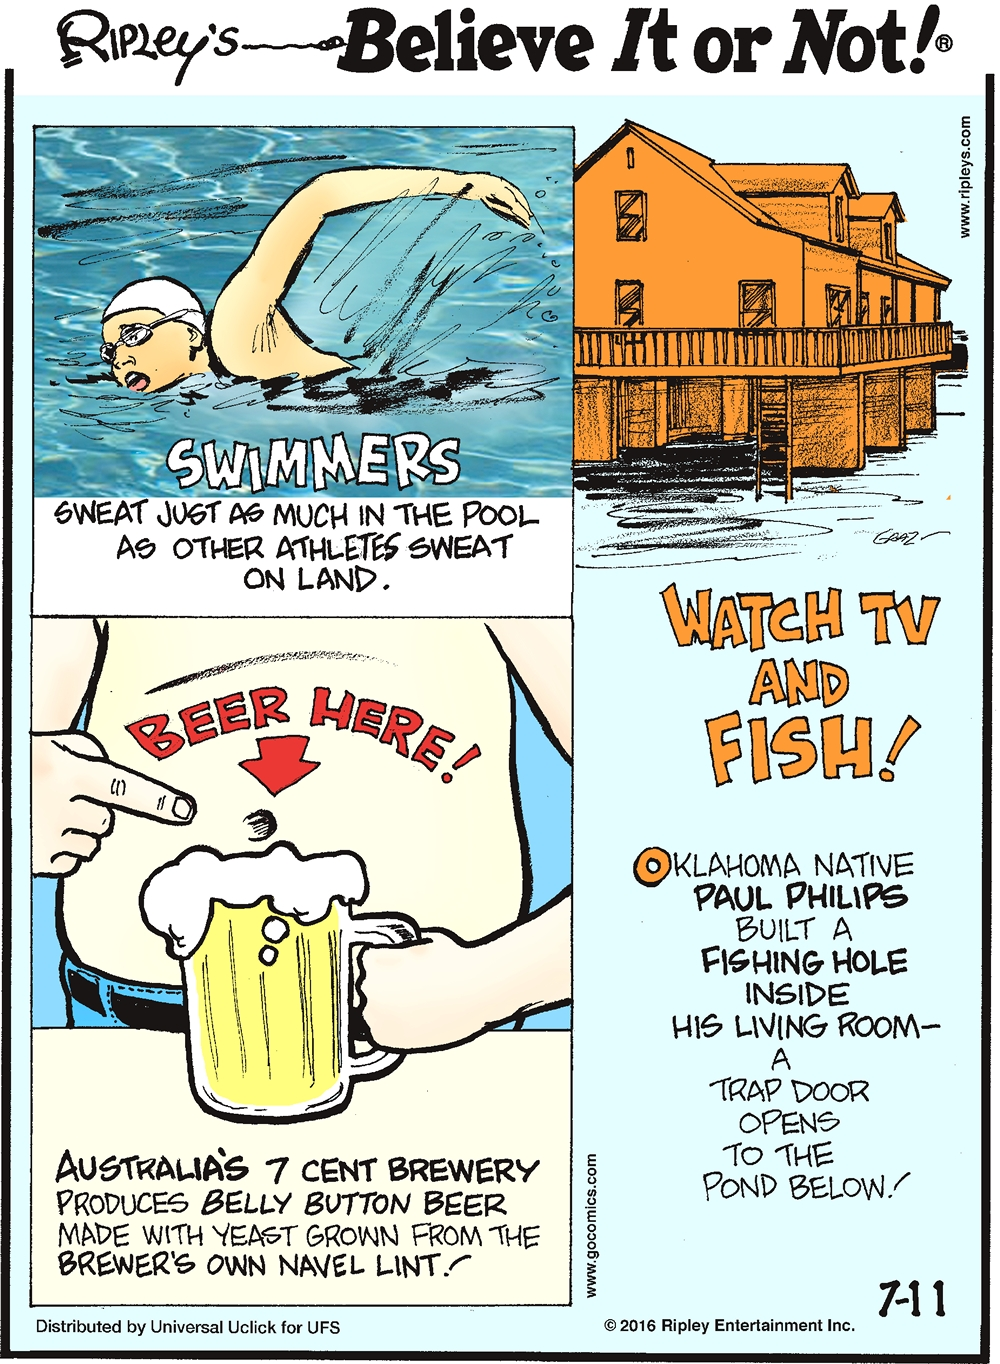 Swimmers sweat just as much in the pool as other athletes sweat on land. -------------------- Australia's 7 Cent Brewery produces belly button beer made from yeast grown from the brewer's navel lint! -------------------- Oklahoma native Paul Philips built a fishing hole inside his living room—a trap door opens to the pond below!